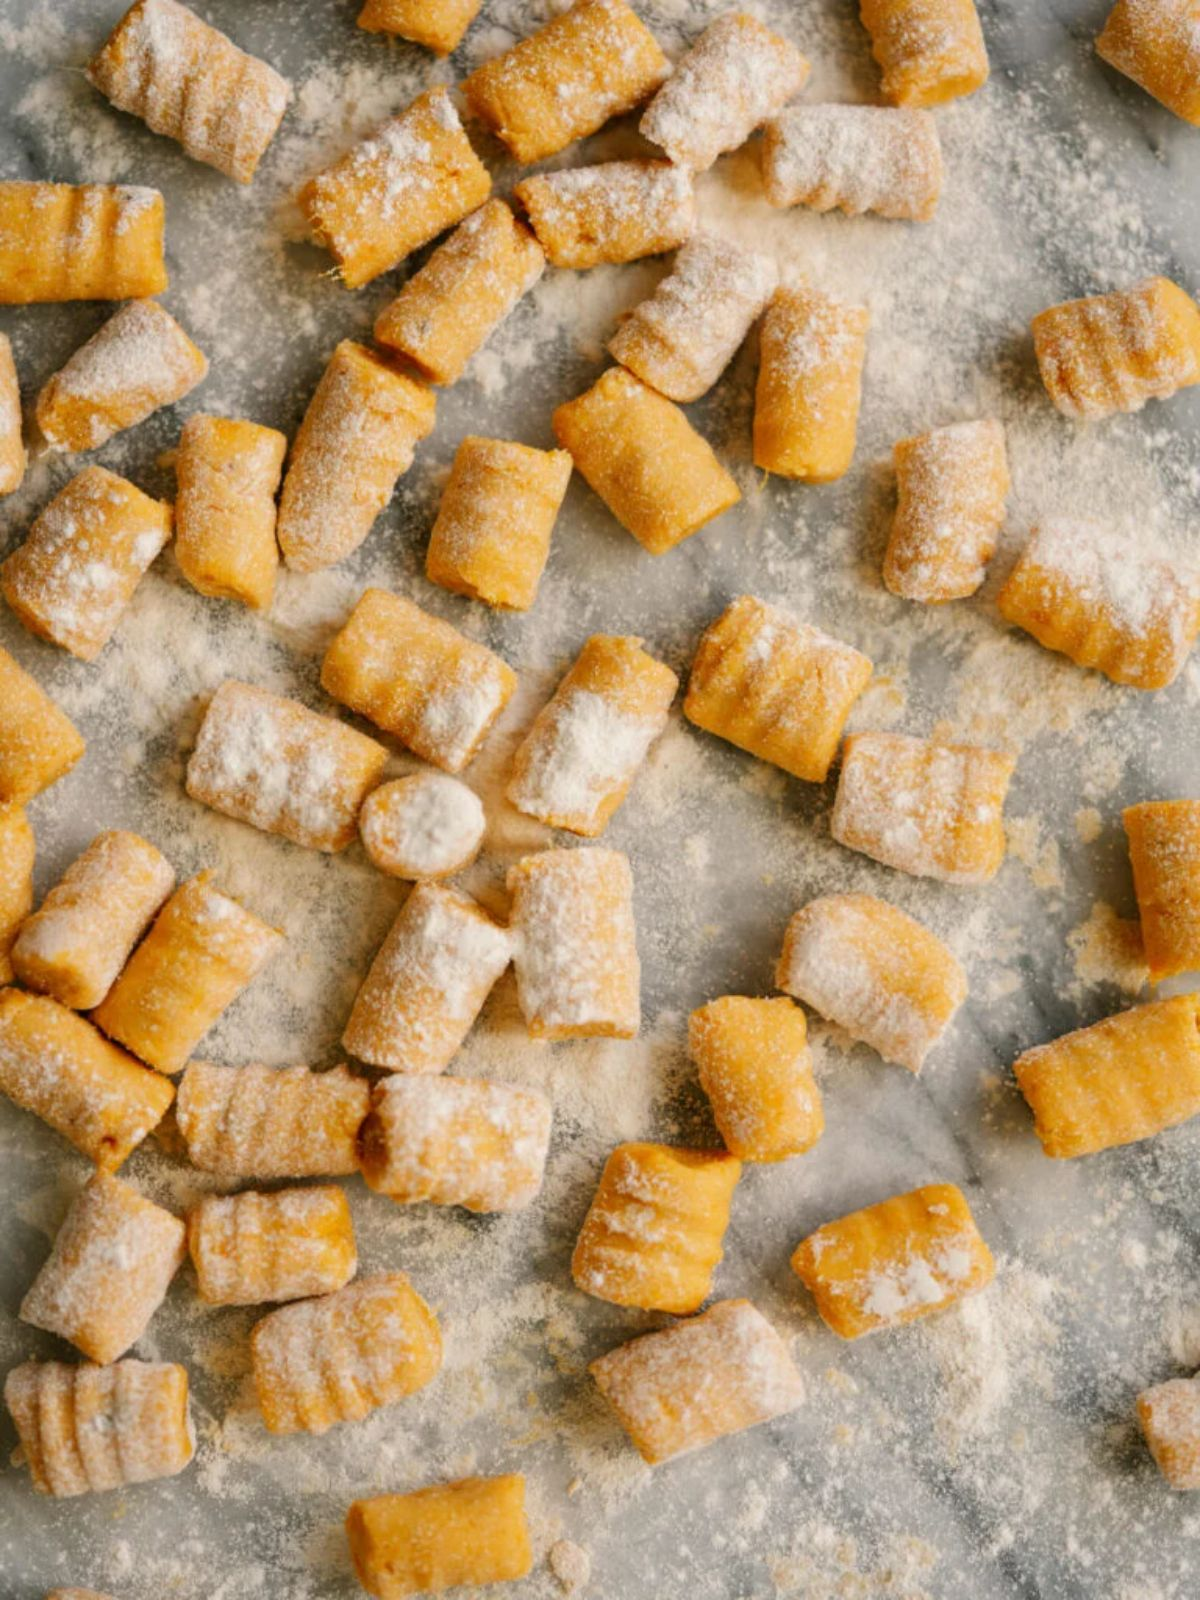 a baking tray with uncooked potato gnocchi, sprinkled with flour